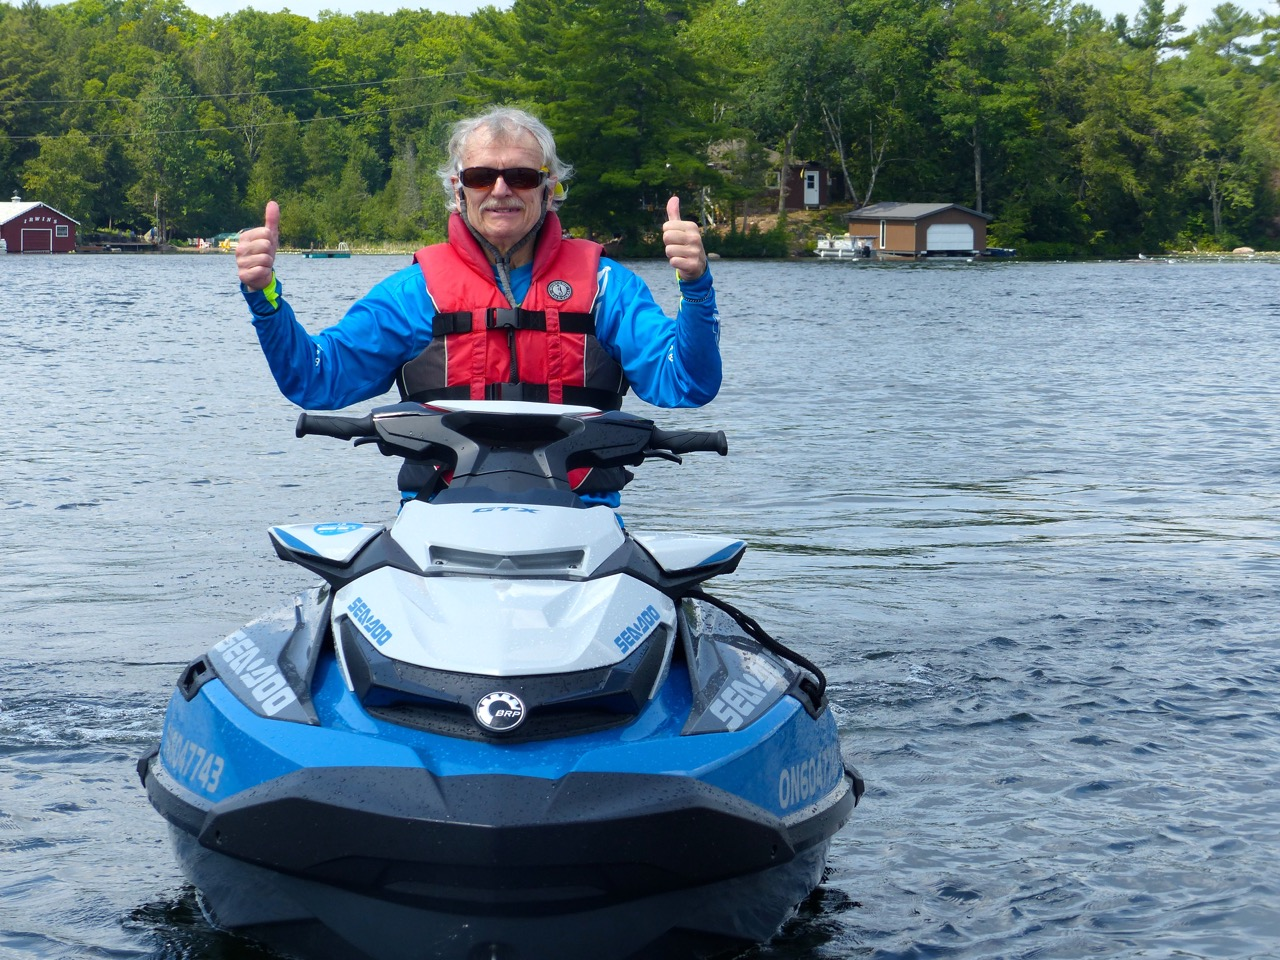 Thumbs up for the new Sea Doo platform